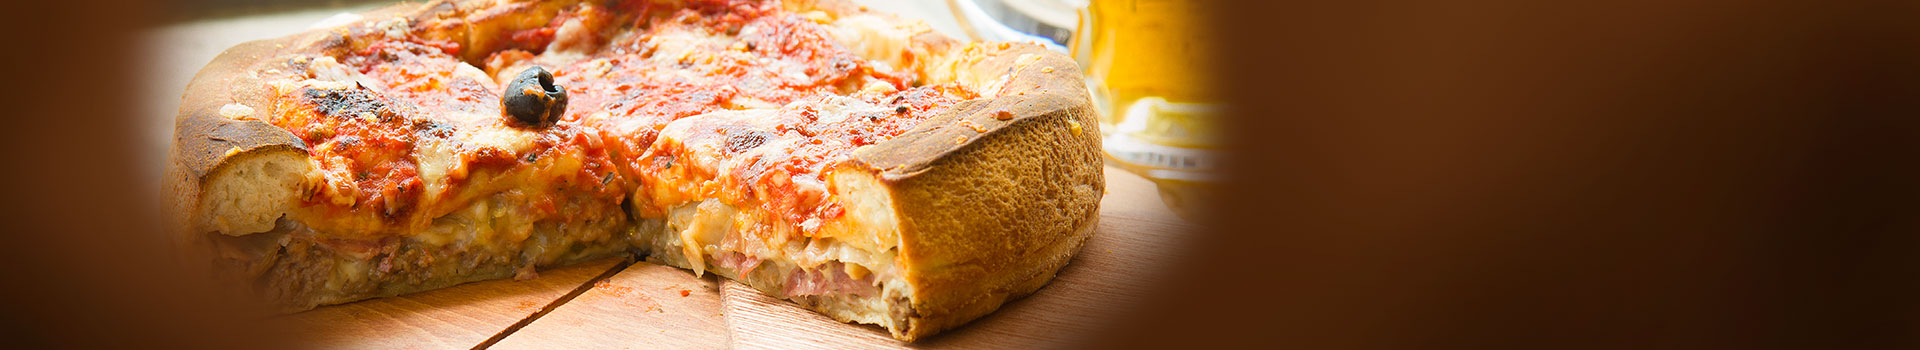 slider-deep-dish-pizza